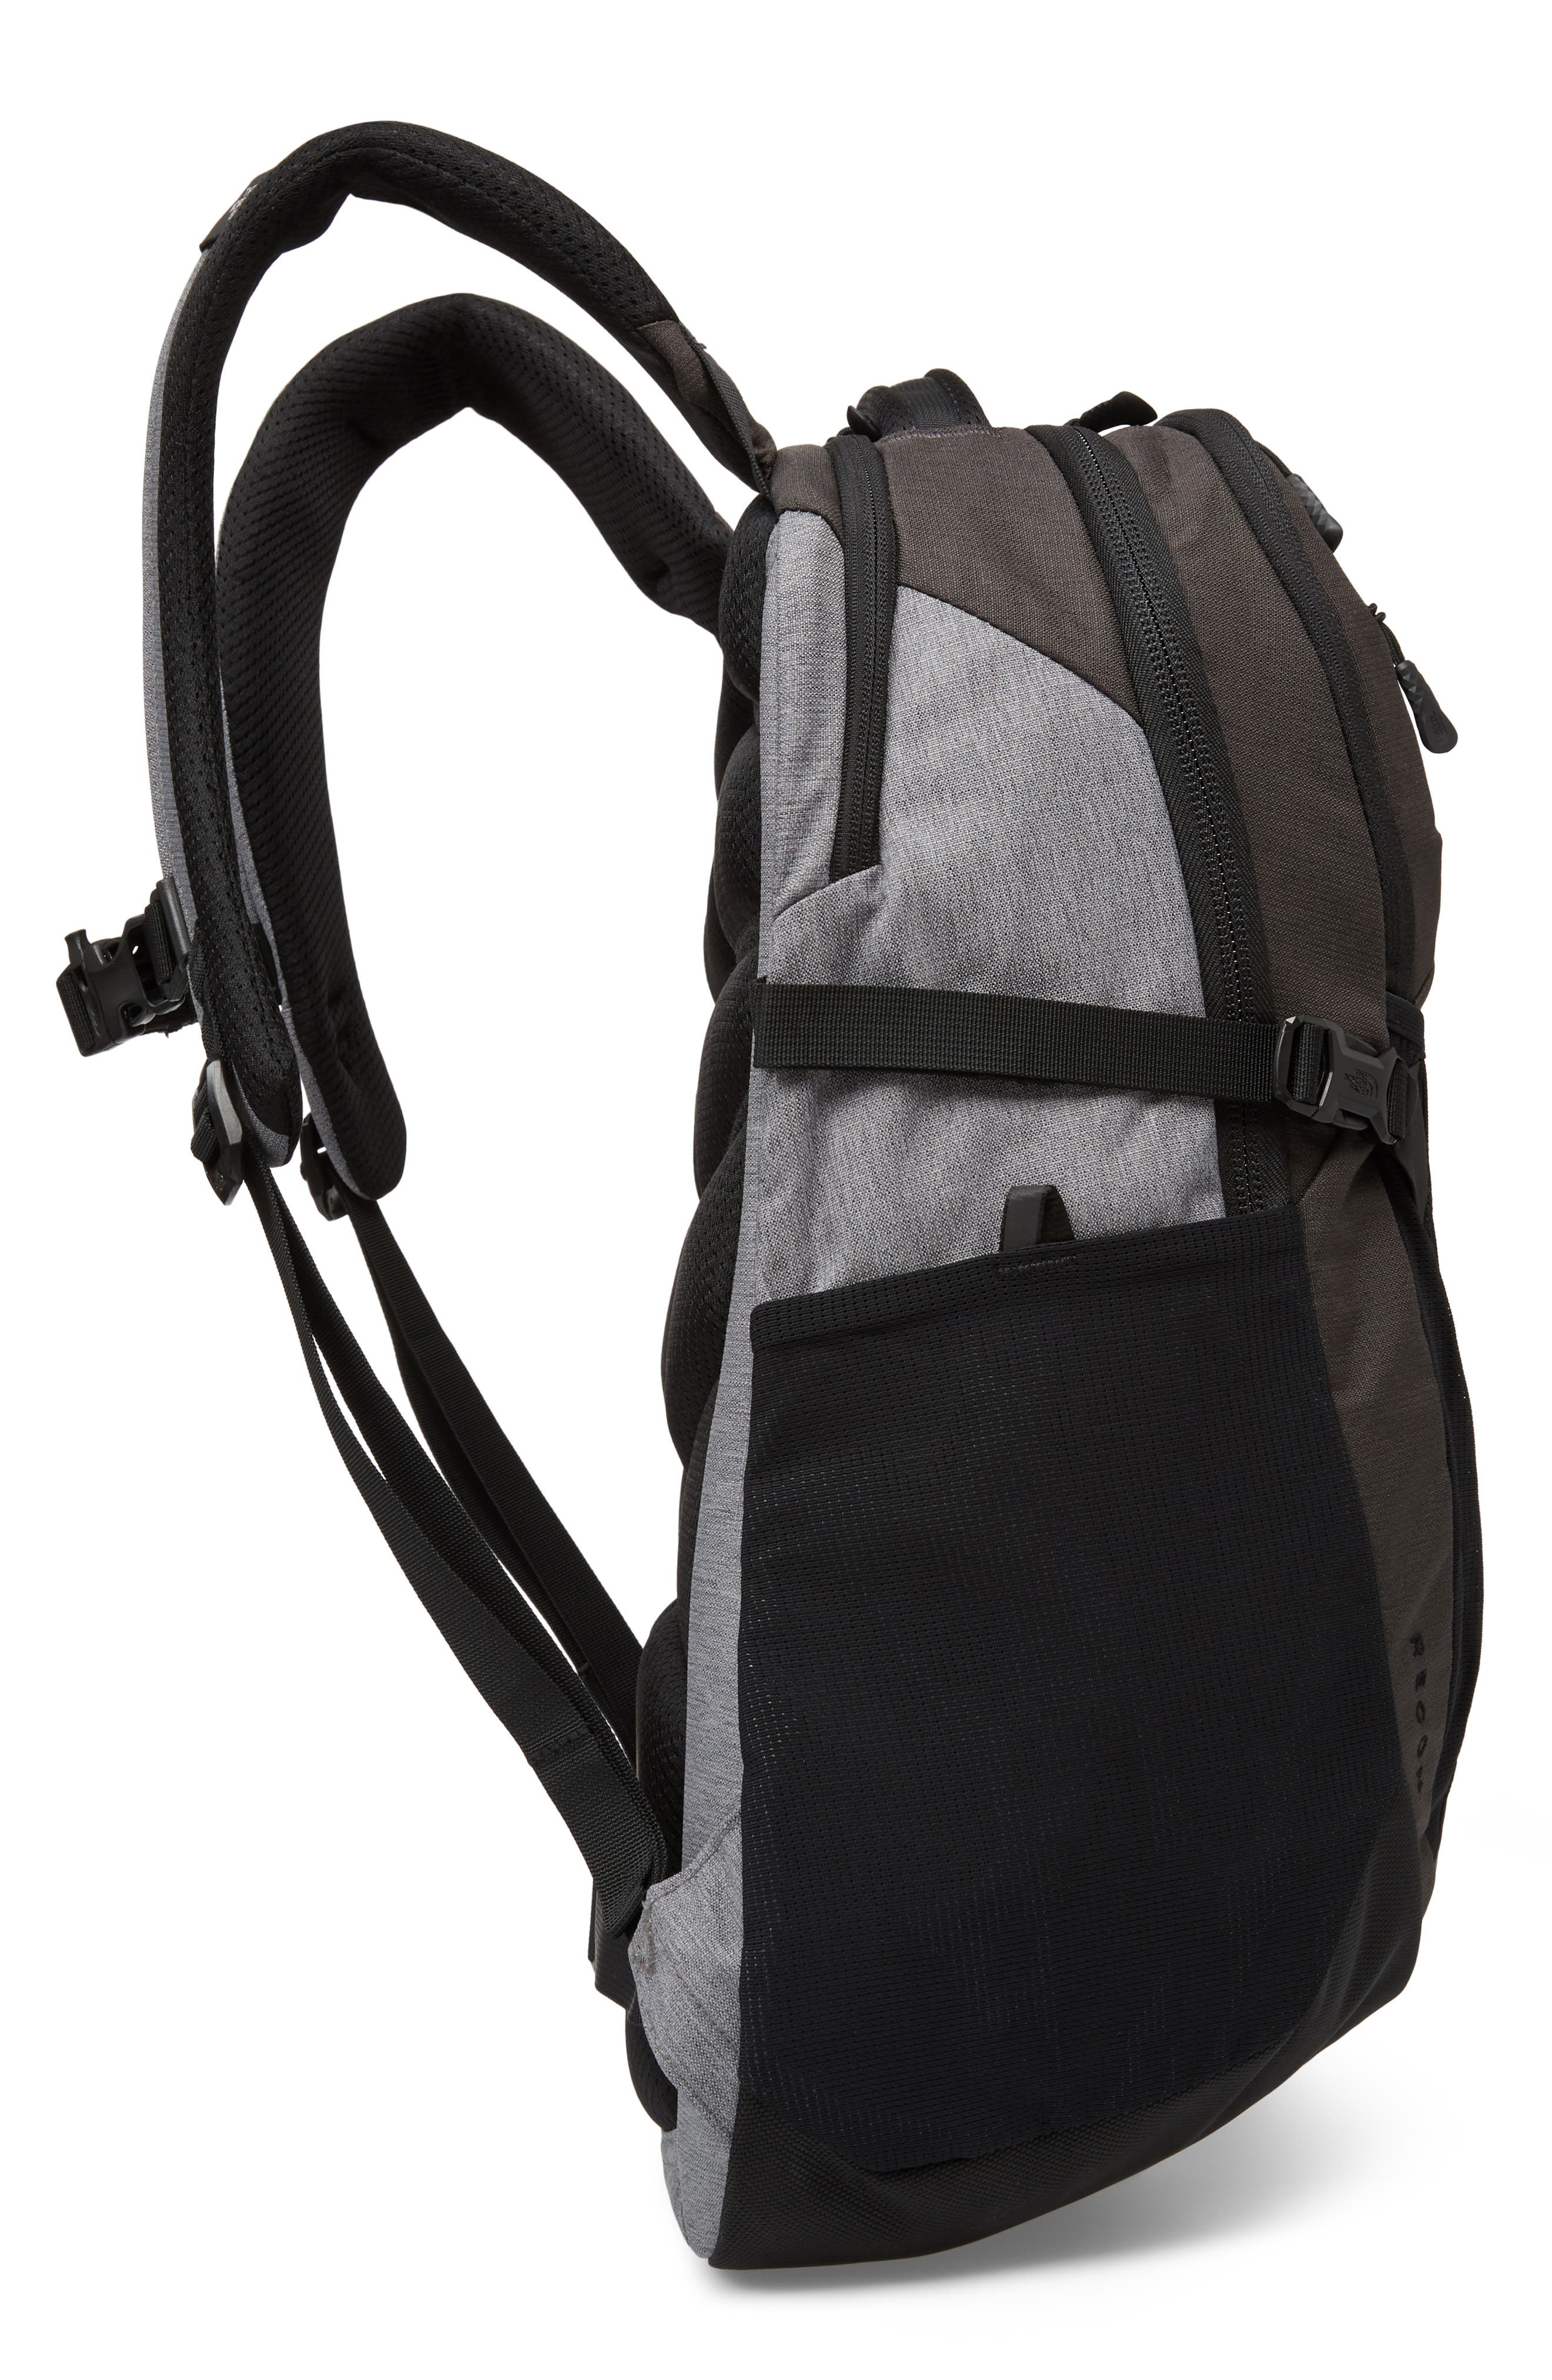 Recon Backpack,                             Alternate thumbnail 5, color,                             DARK GREY HEATHER